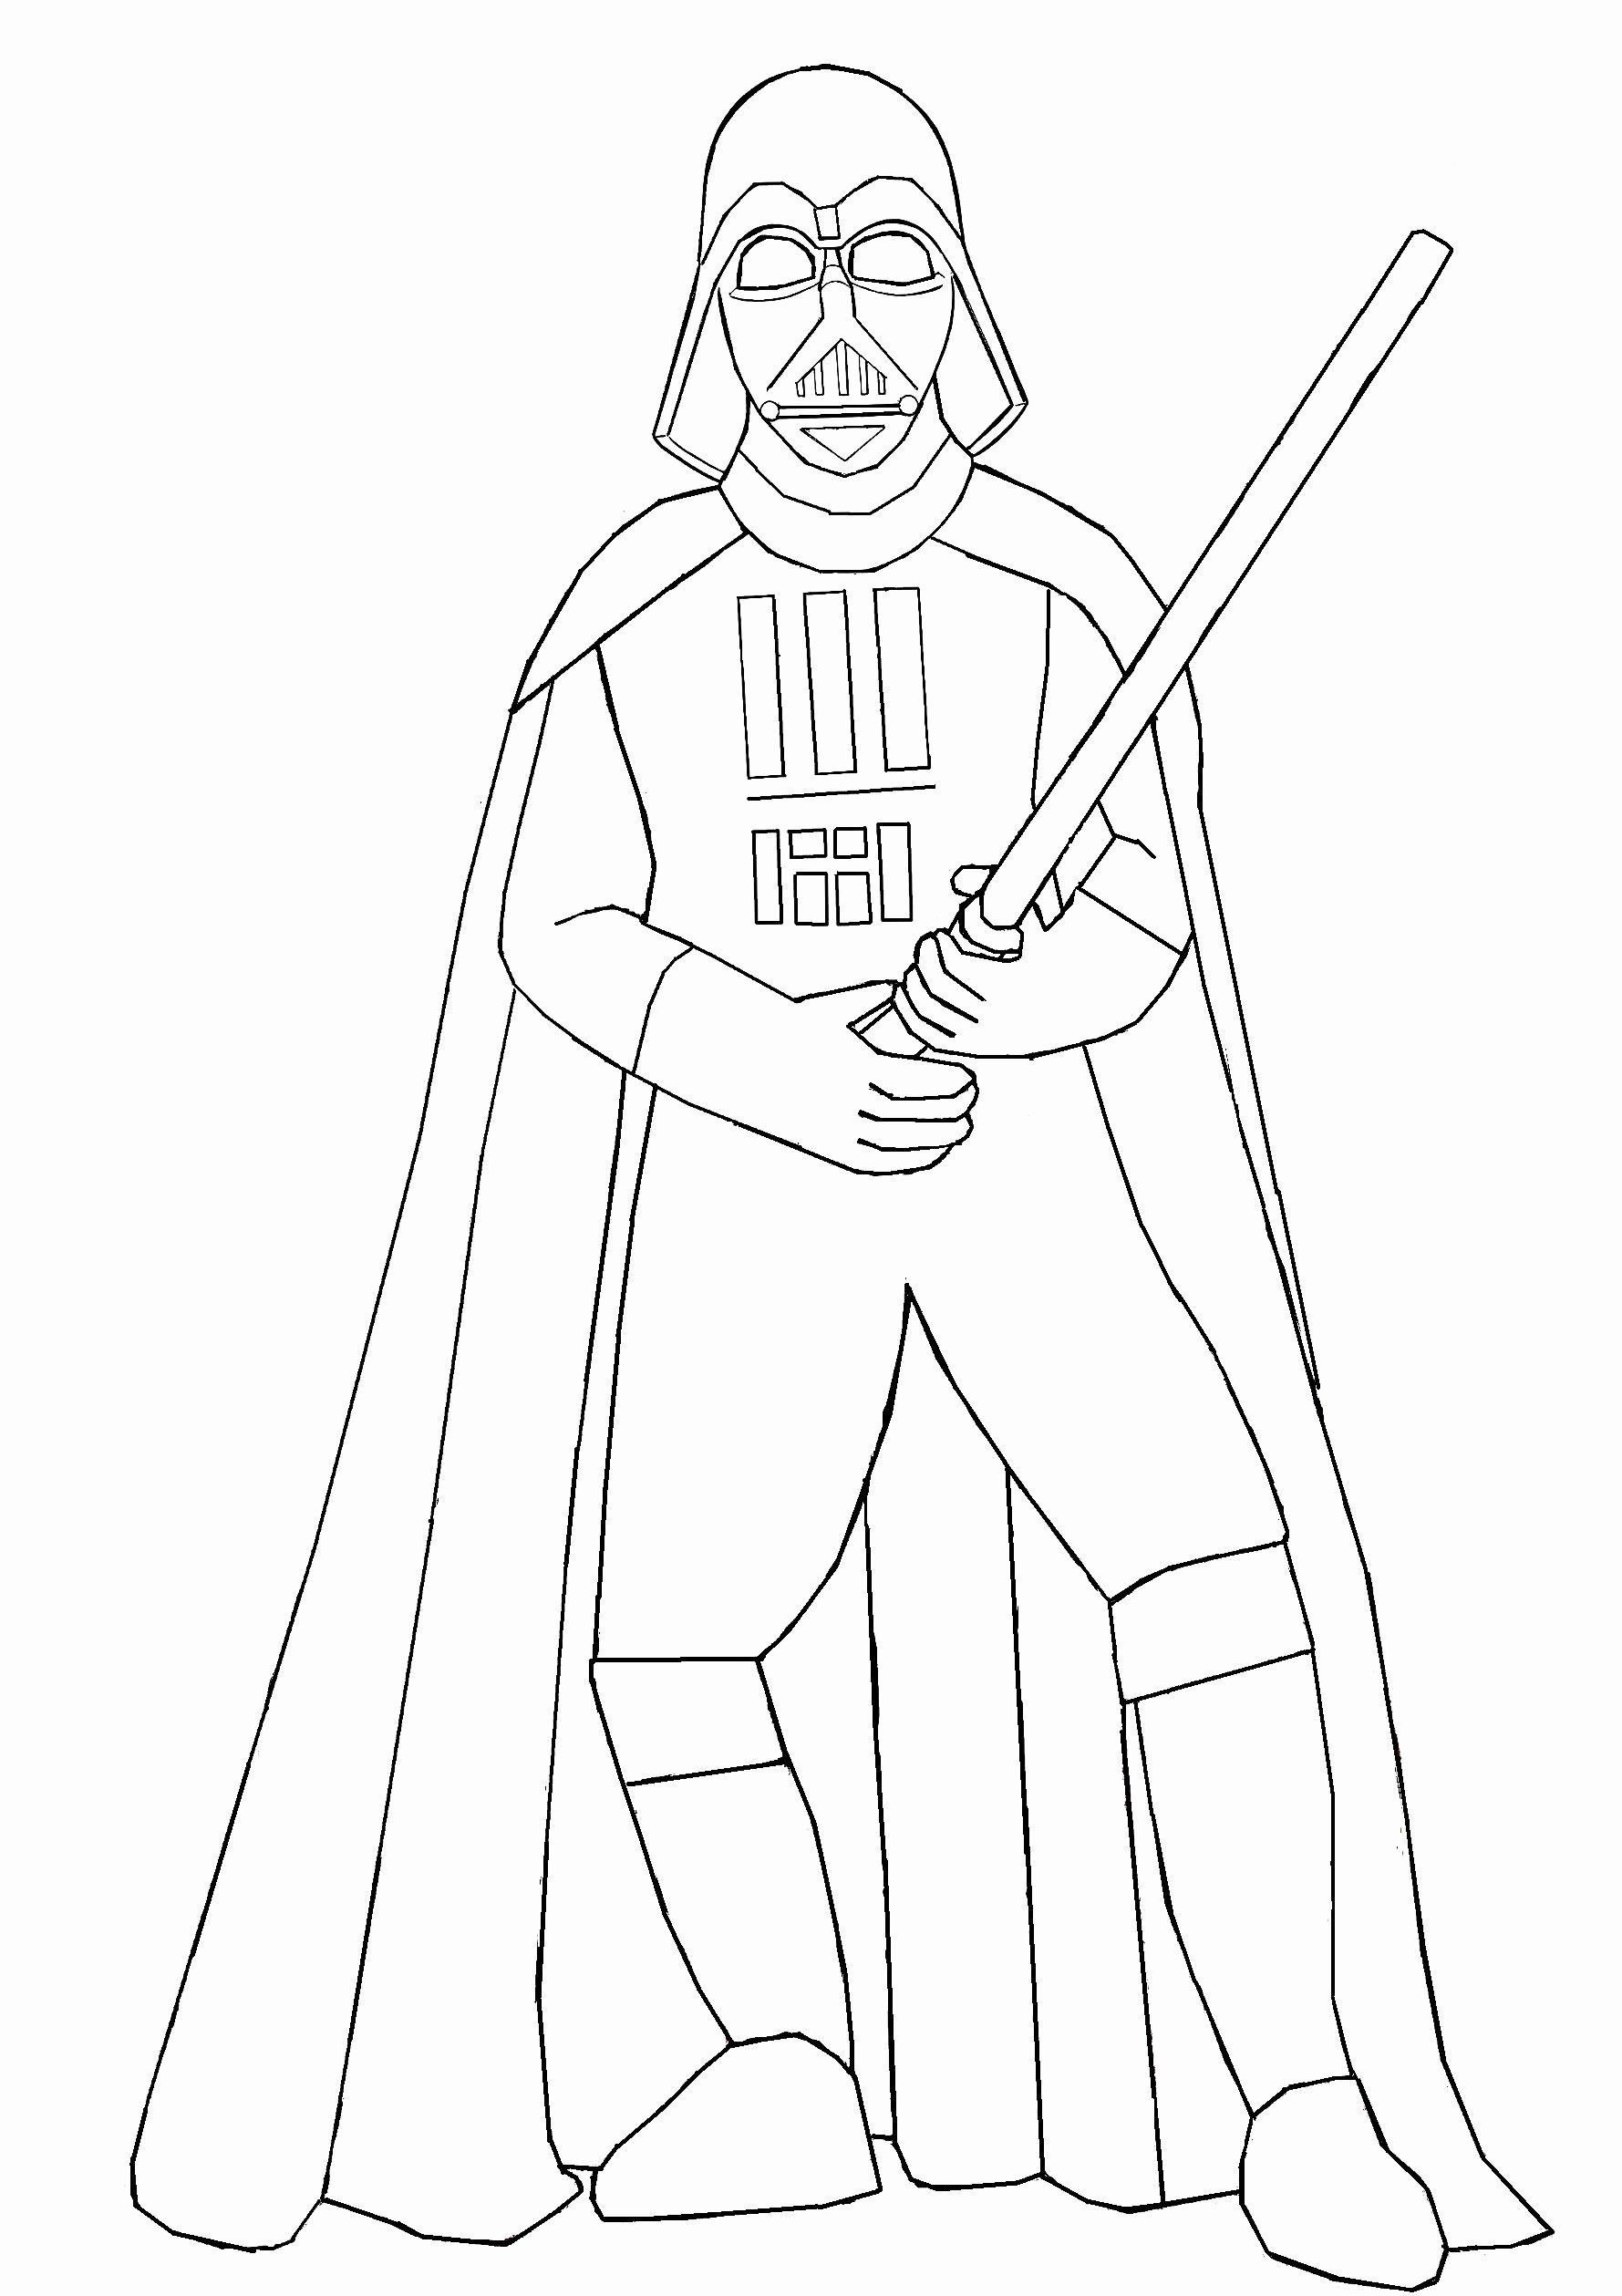 Darth Vader Coloring Page Lovely Darth Vader Holding Lightsaber Coloring Page Free In 2020 Star Wars Coloring Book Coloring Pages Darth Vader